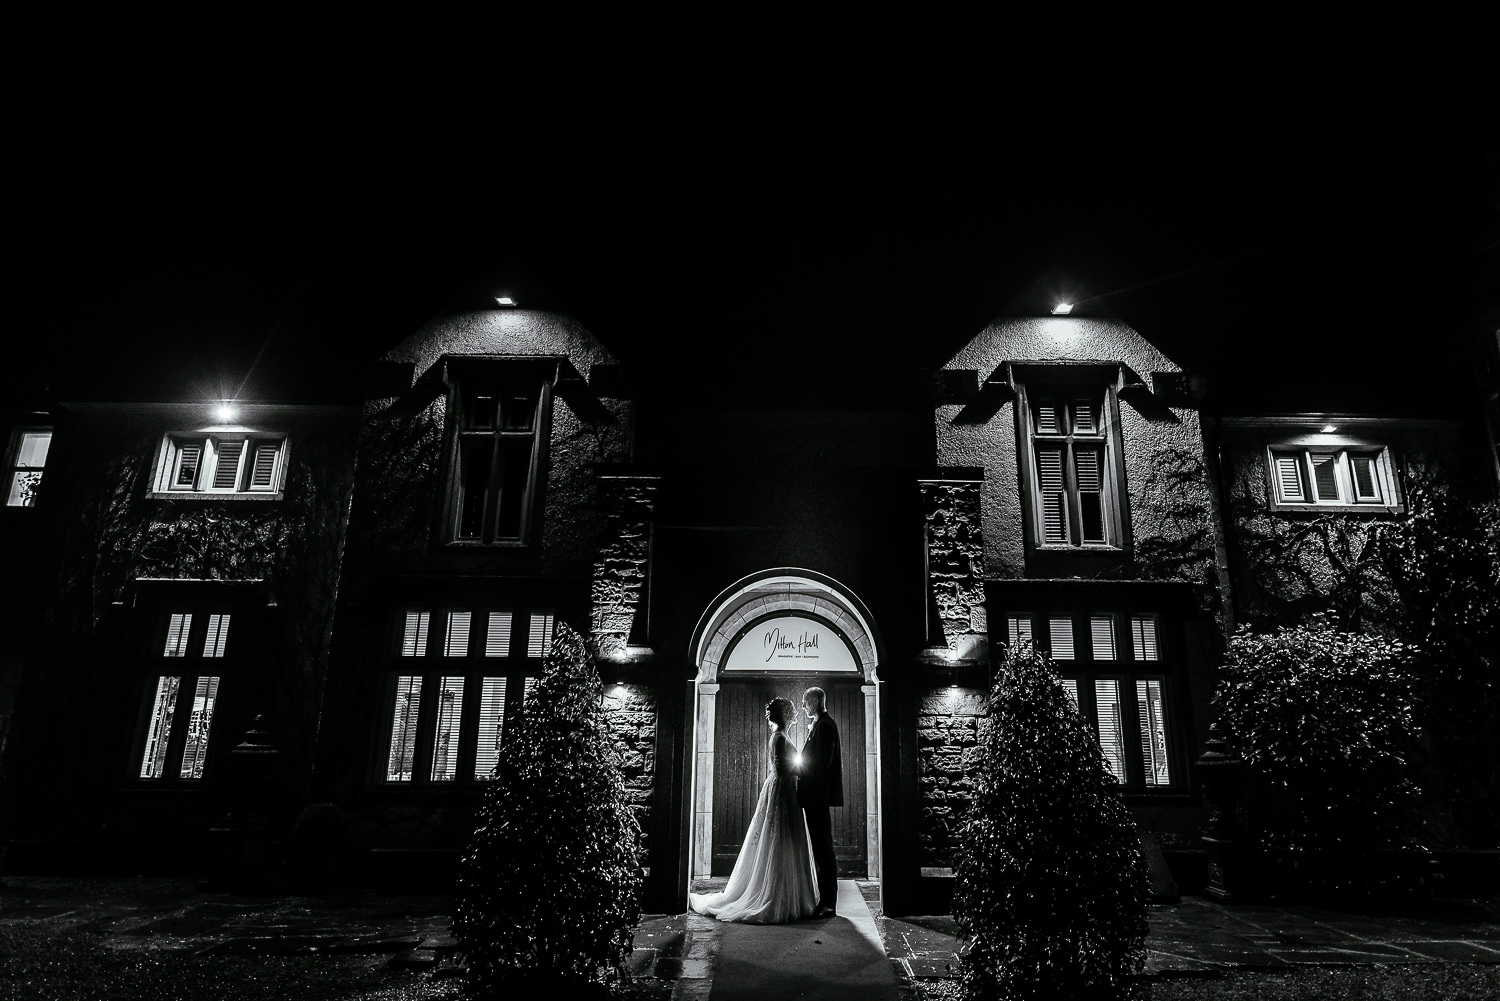 Night time portrait from Mitton Hall